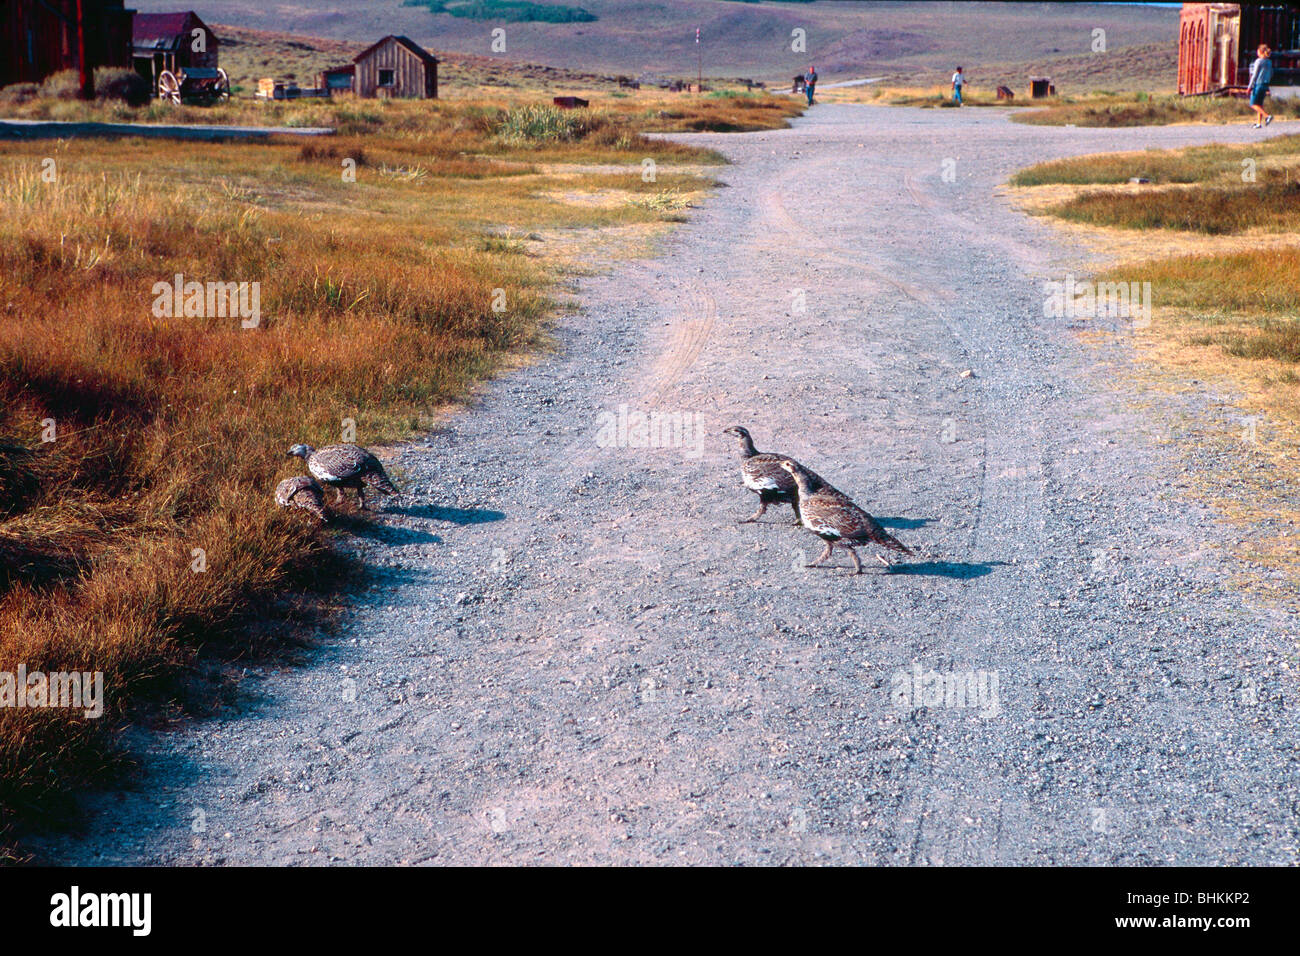 Flock of Grouse is Crossing the Street in Bodie, California - Stock Image